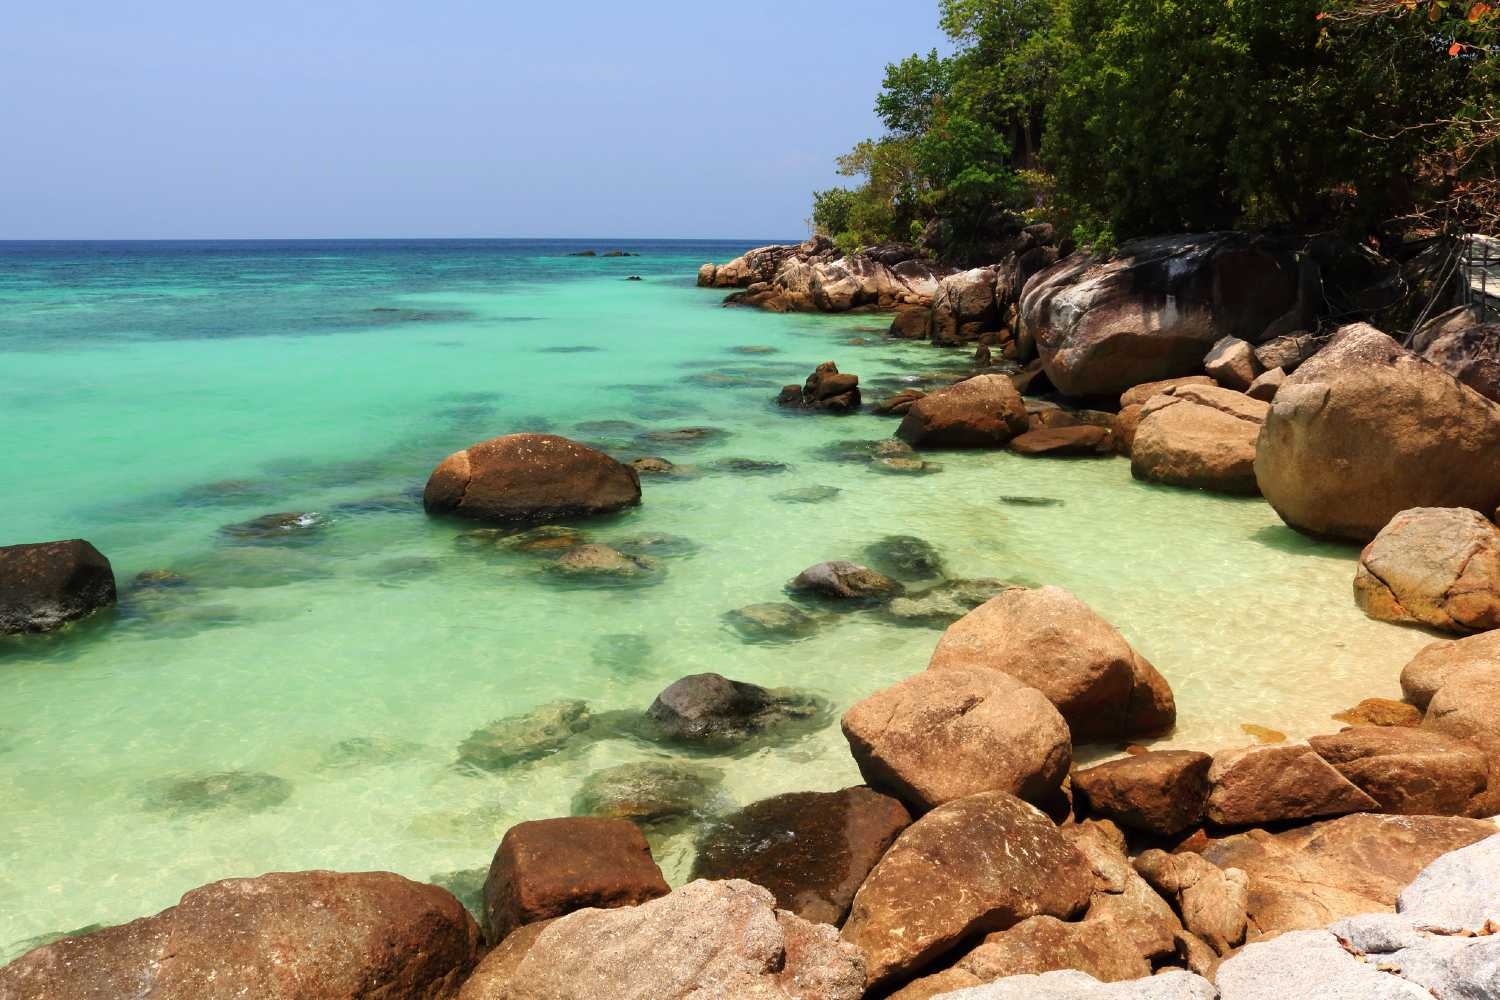 the beautiful and clear blue-green seawater of Pattaya Beach on Koh Lipe, Thailand